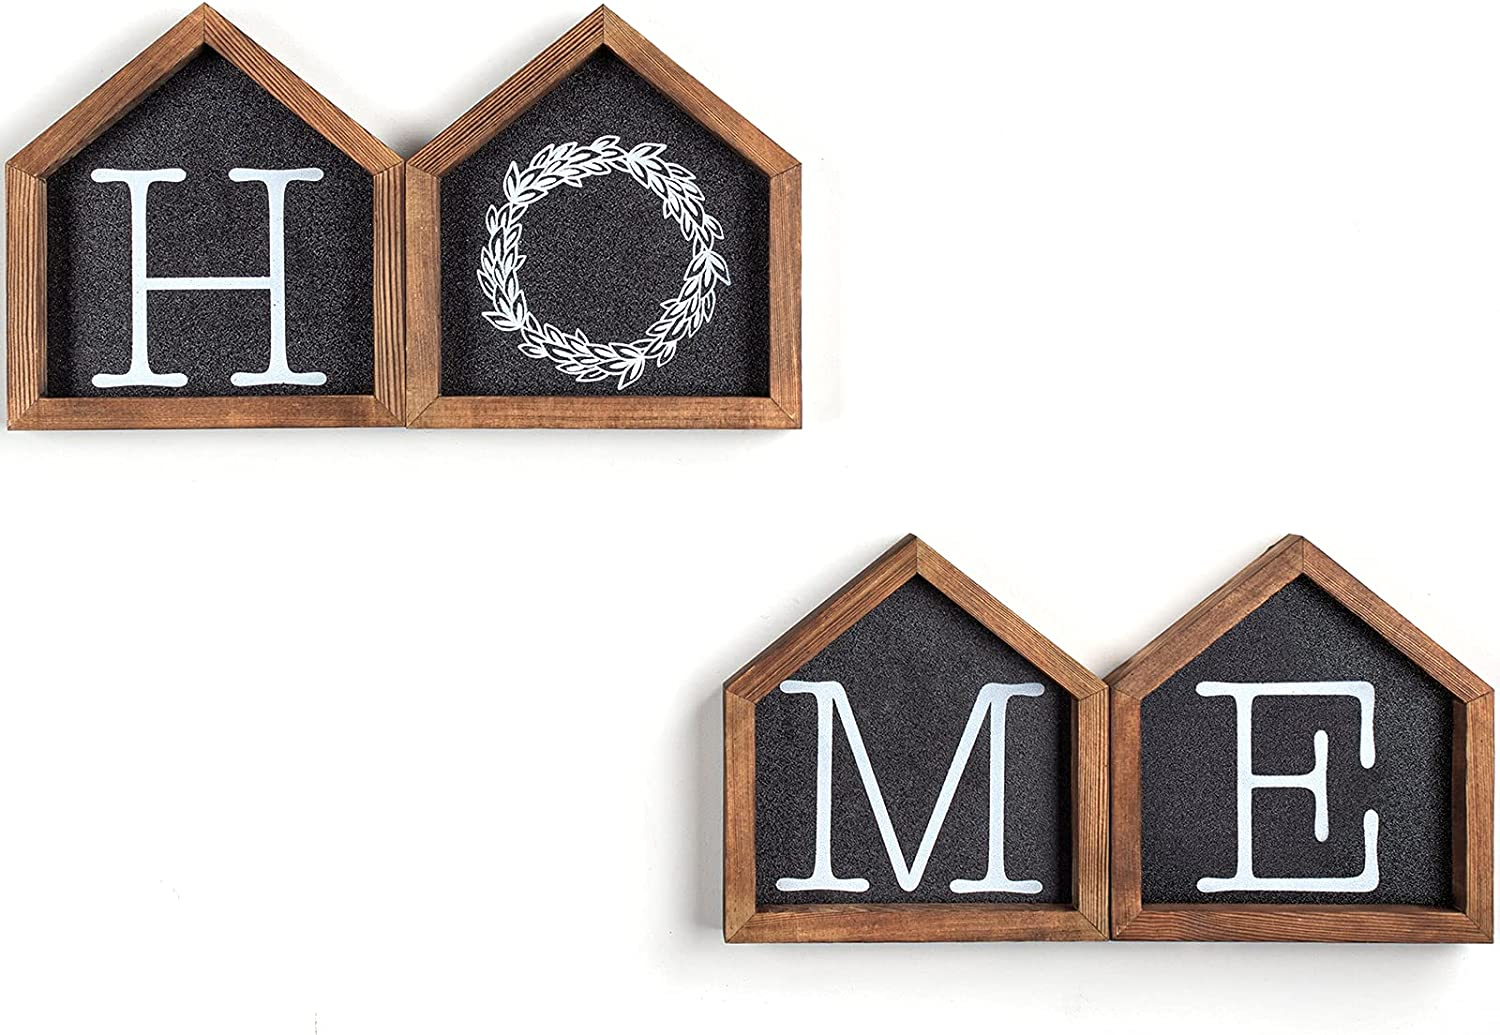 Rustic Wooden Home Signs Wall Decor Set of 4, Wall Hanging House Shaped Farmhouse Letter Prints for Home Decor, Perfect Country Decor for Living Room, Bedroom,Gallery